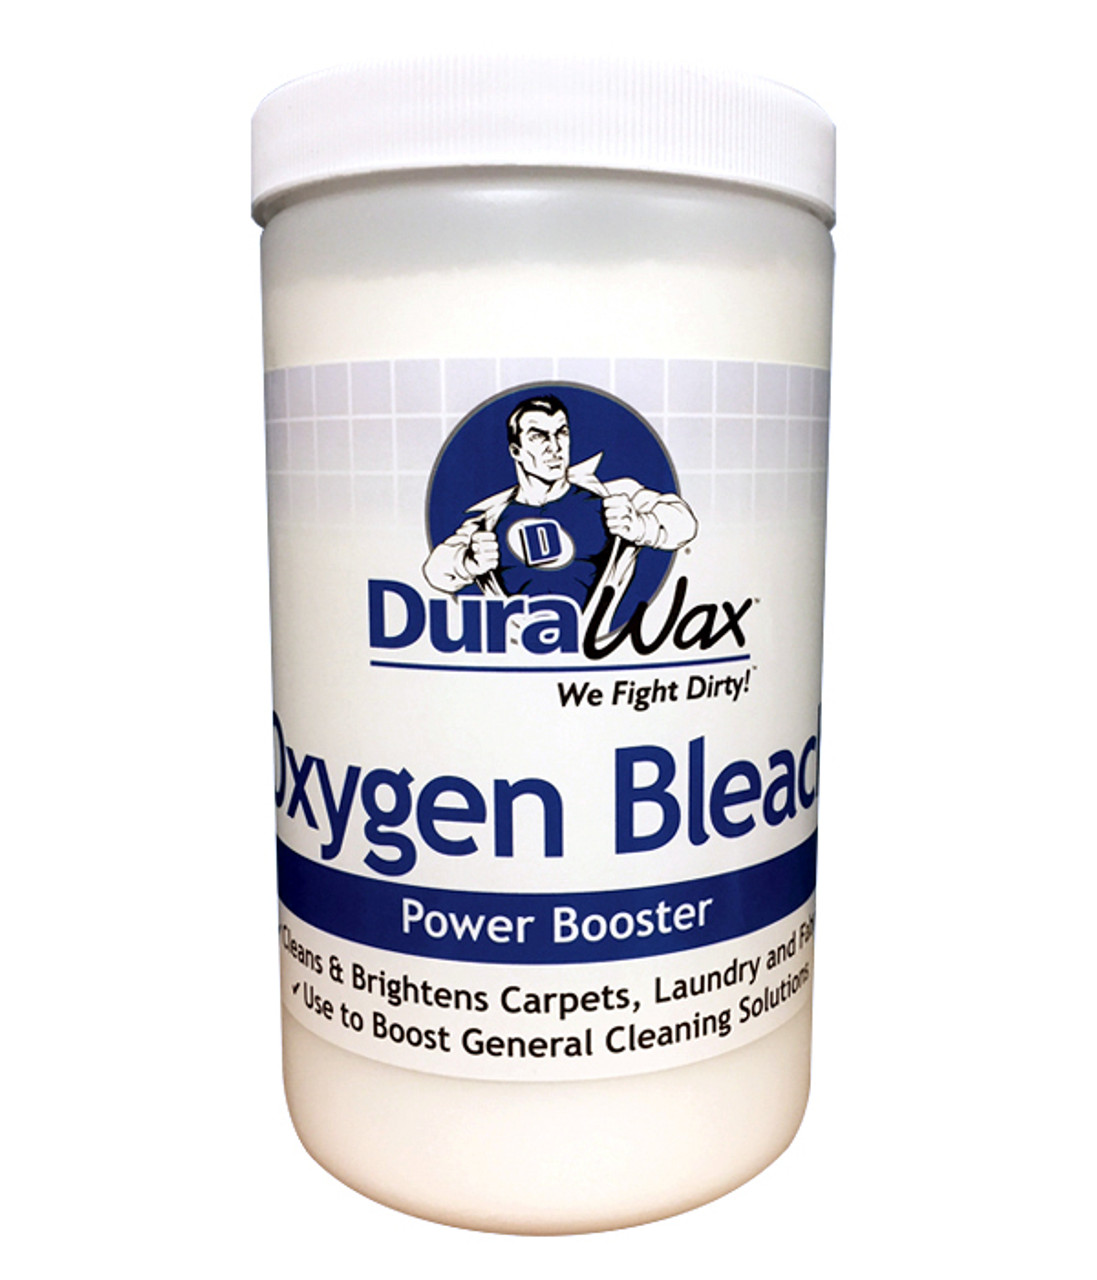 A safe alternative to chlorine - oxygenated bleach eliminates the odor and danger of chlorine bleach.